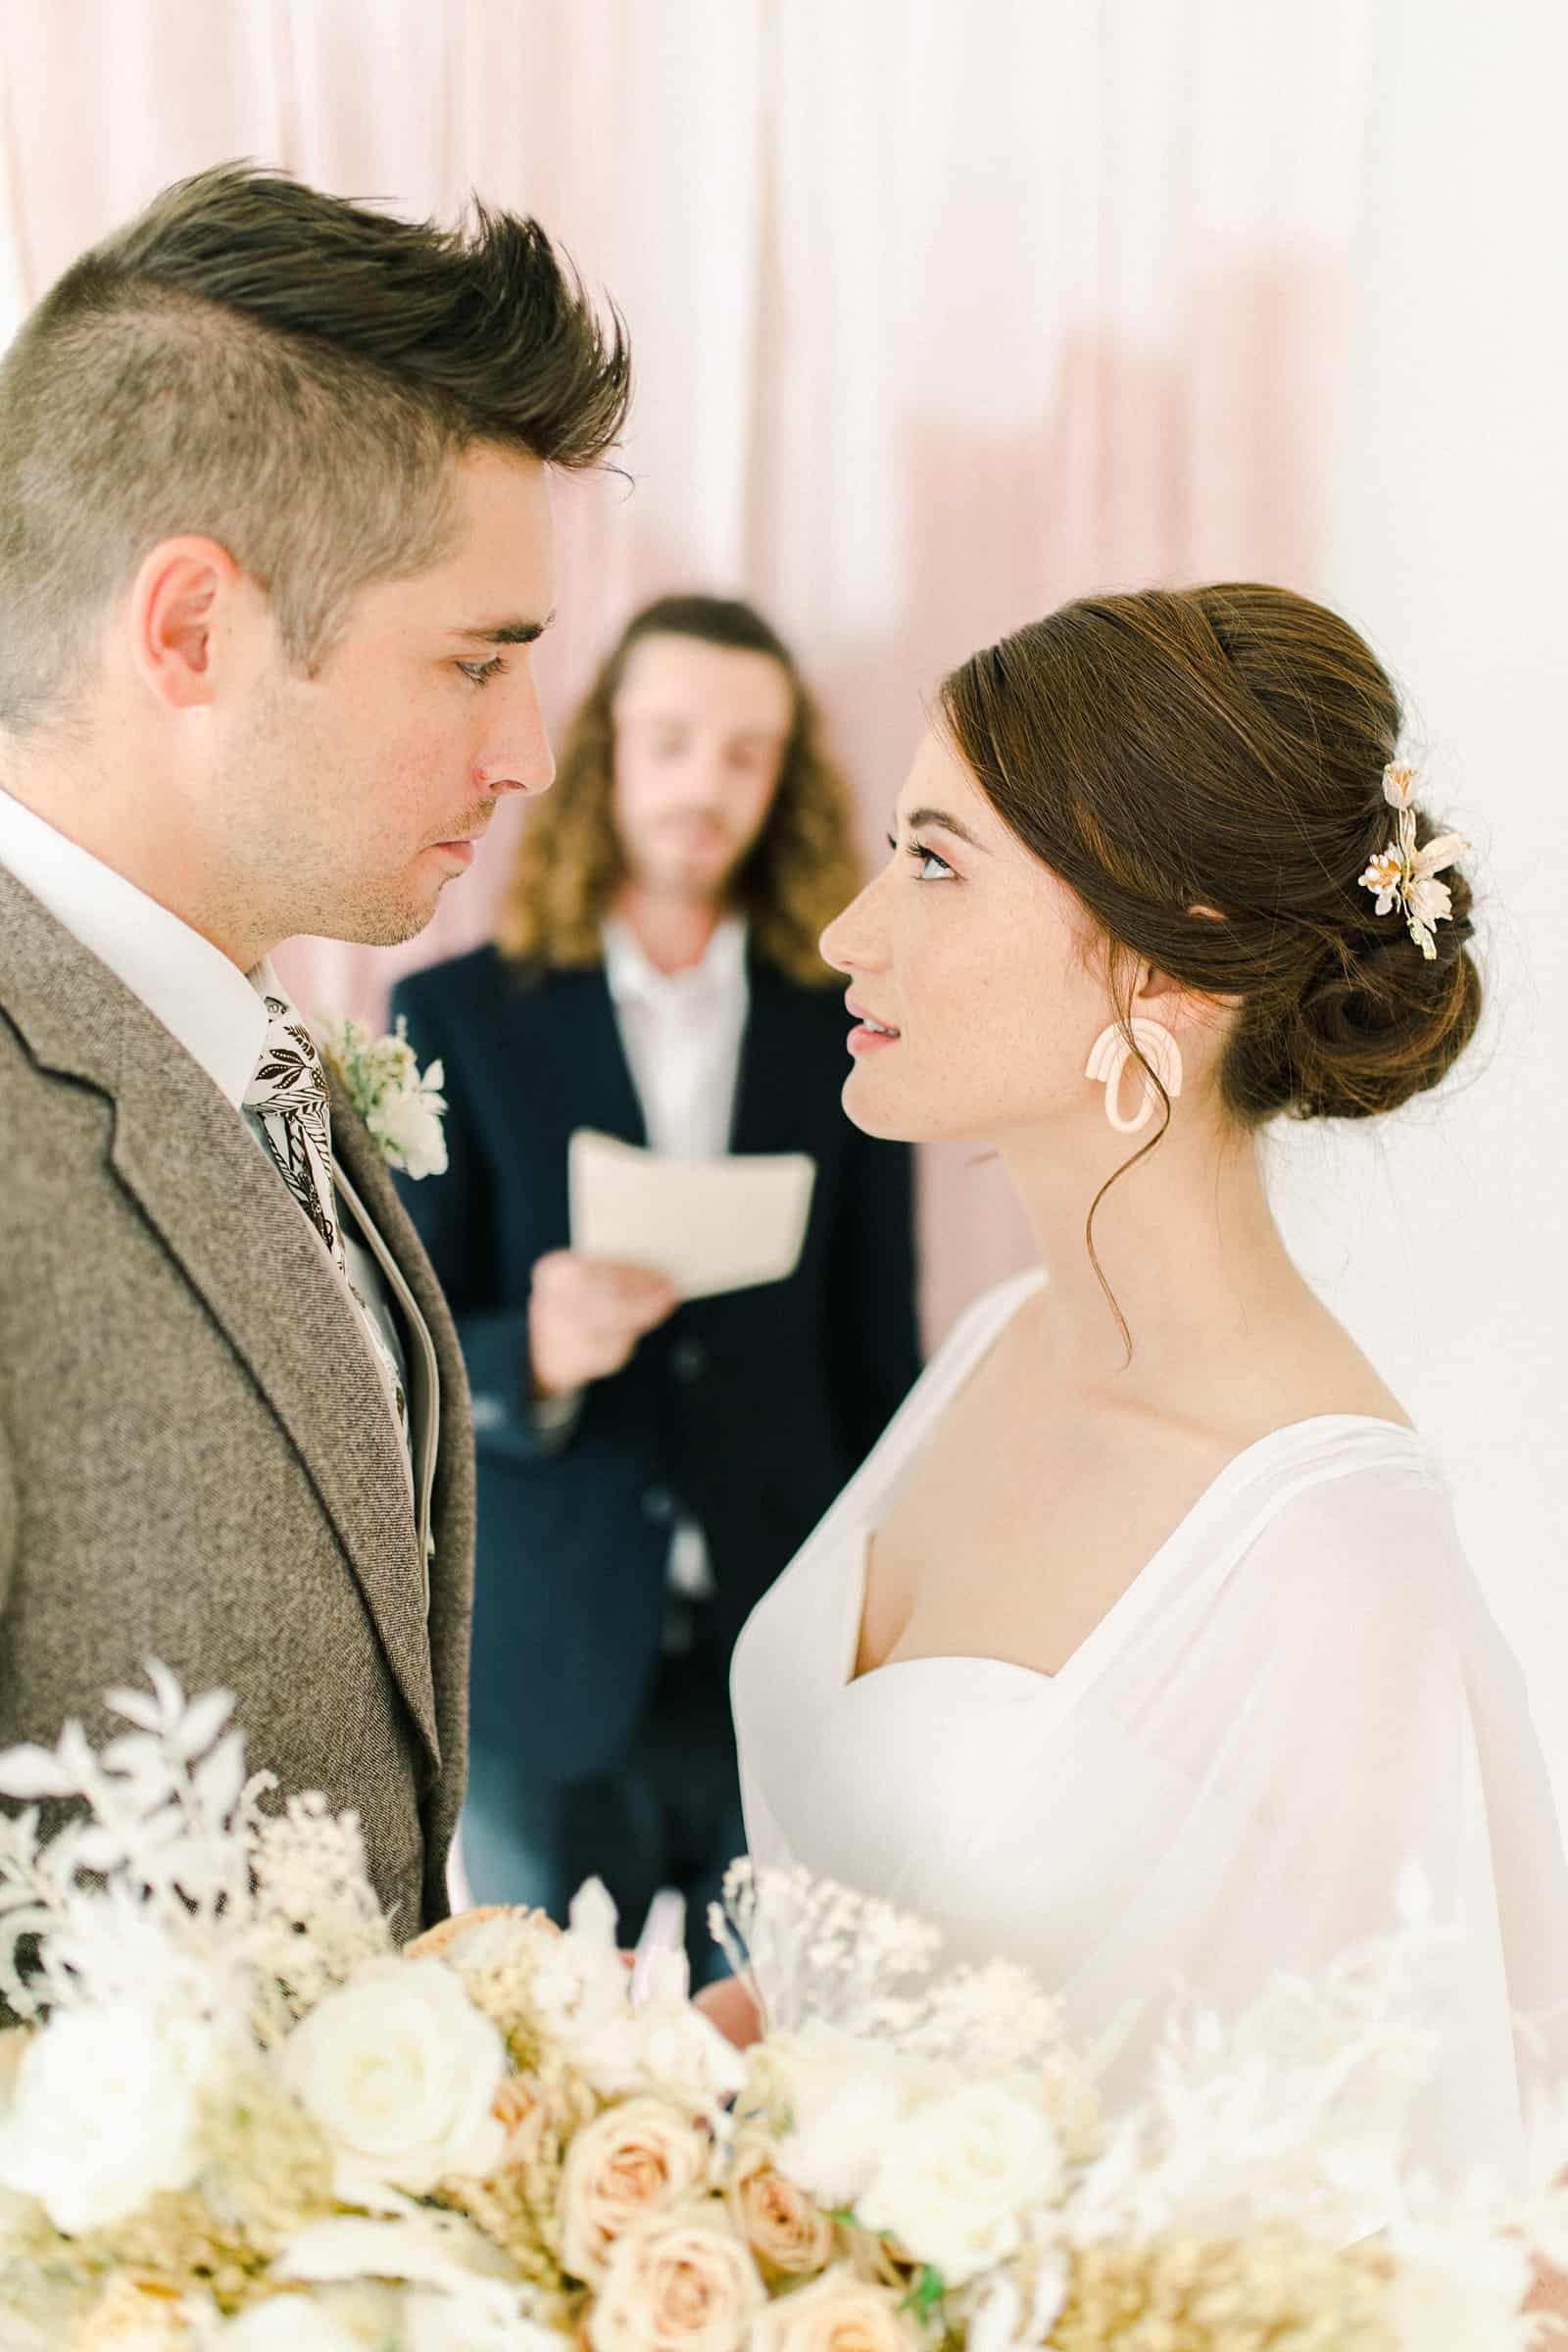 Modern wedding ceremony with blush pink painted backdrop